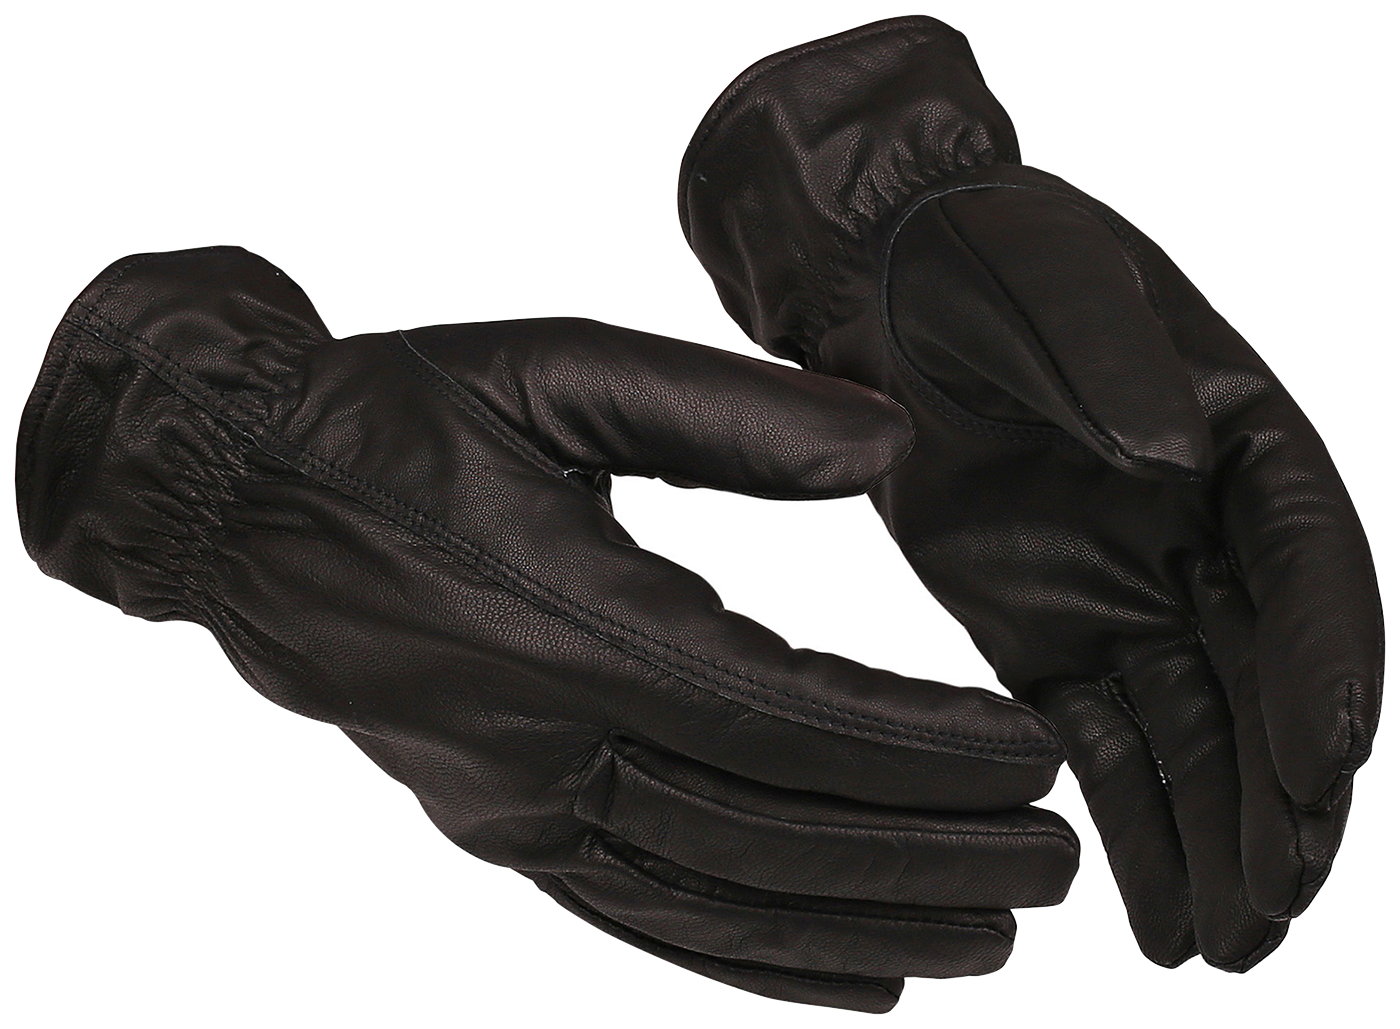 Cut Protection Glove GUIDE 2002W